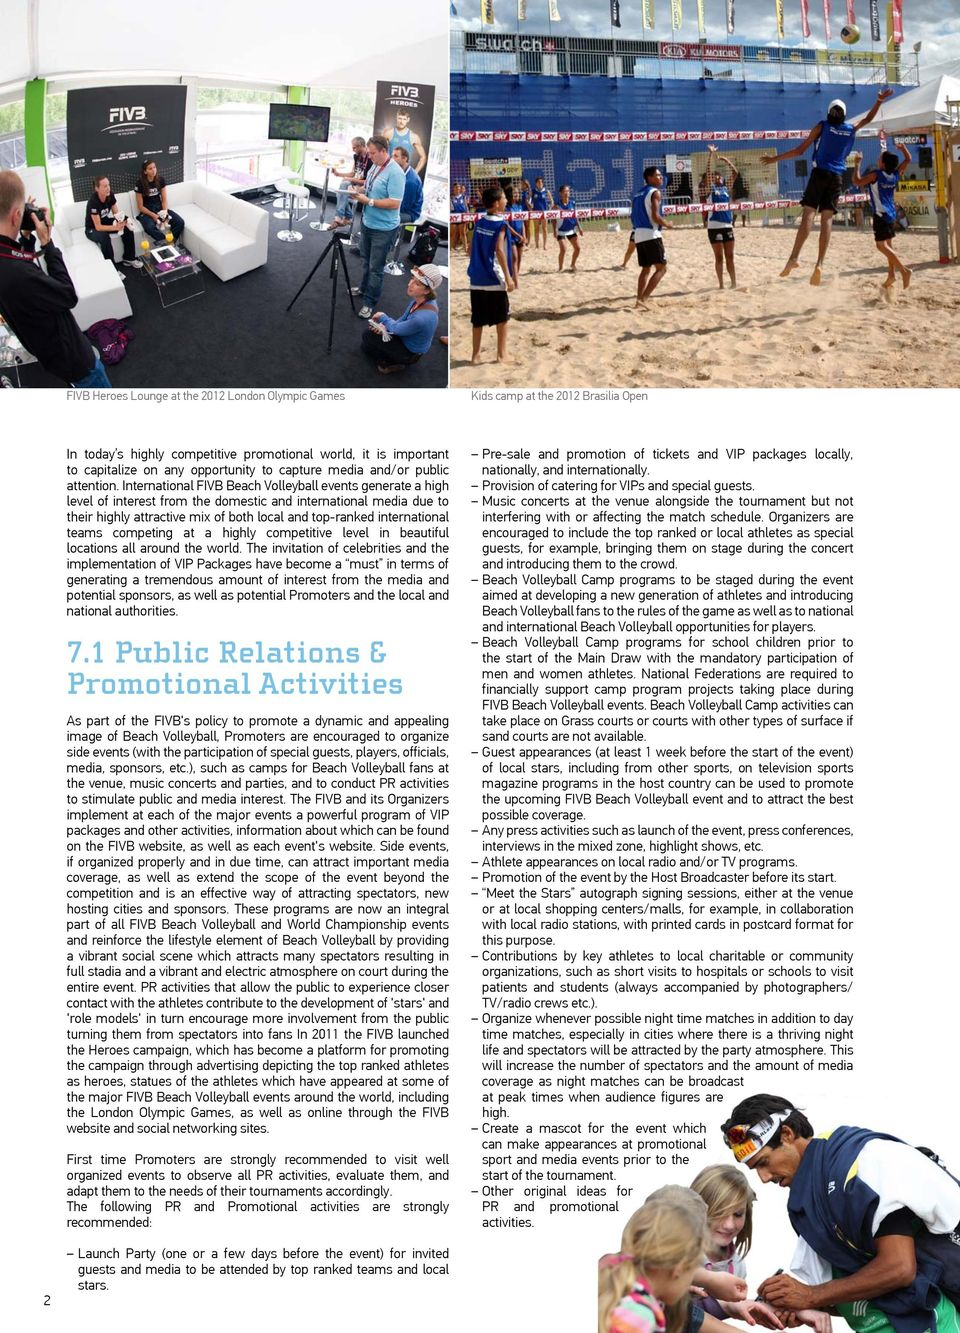 International FIVB Beach Volleyball events generate a high level of interest from the domestic and international media due to their highly attractive mix of both local and top-ranked international